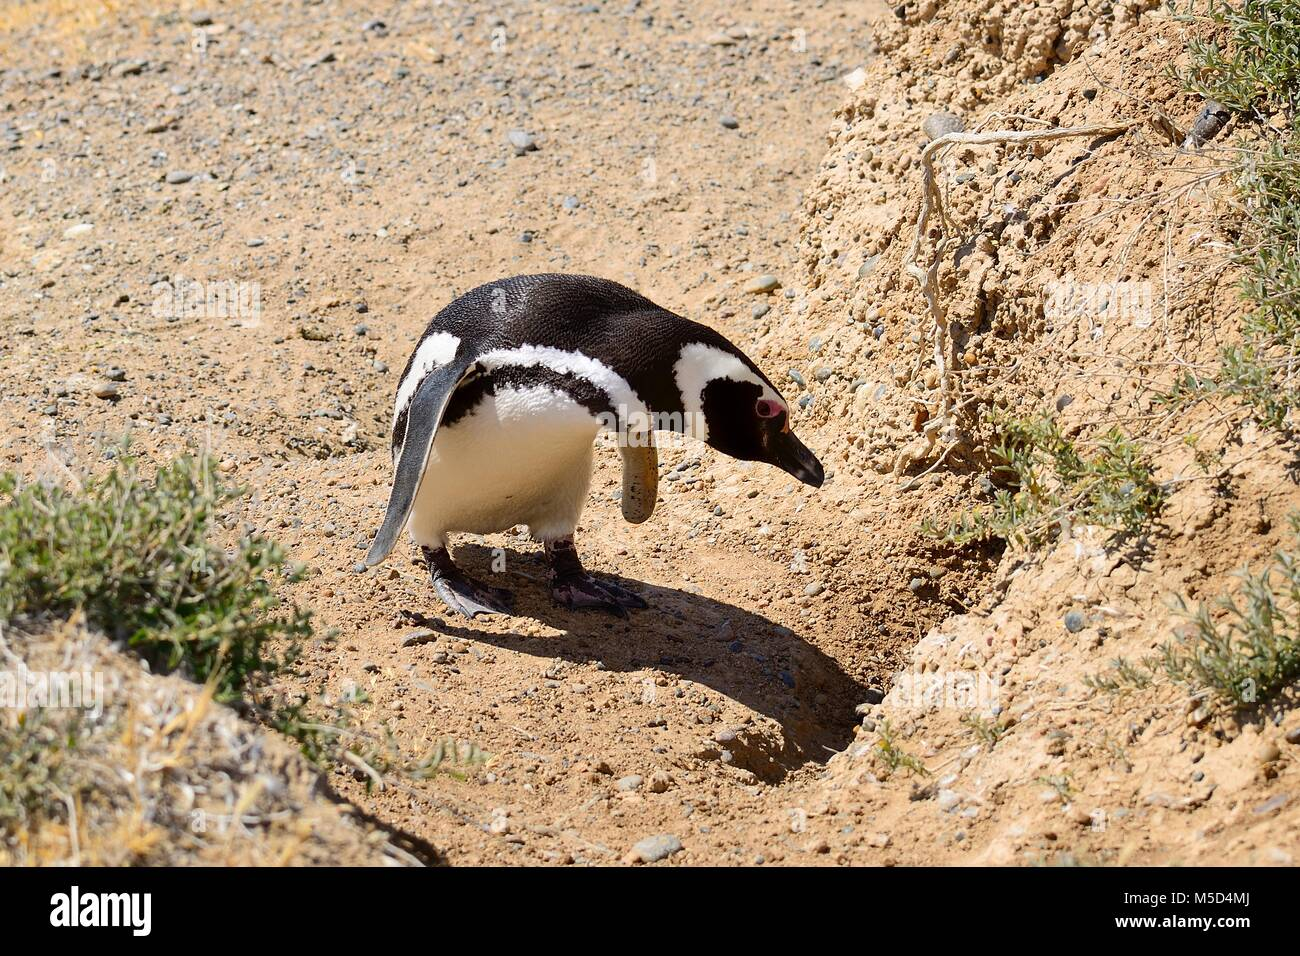 Magellanic penguin (Spheniscus magellanicus) in front of breeding burrow, Caleta Valdes, Peninsula Valdes, Chubut, - Stock Image